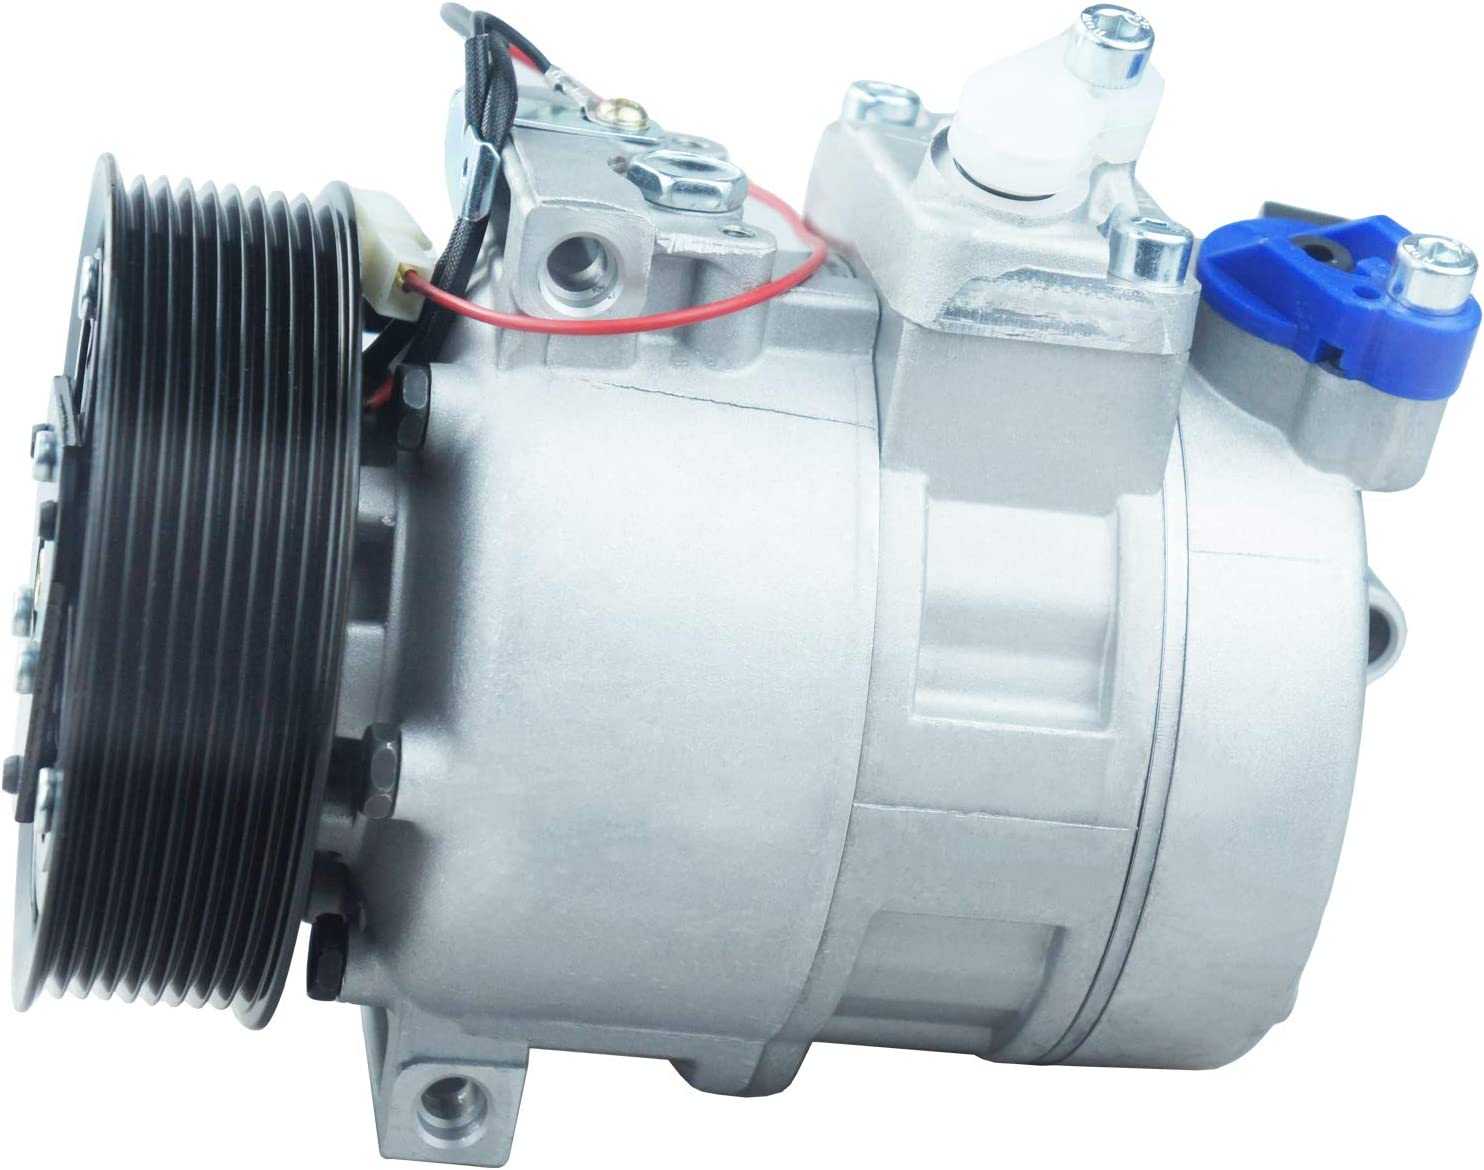 1pc A Popularity C Clutch 2021 autumn and winter new ForActros Compressor